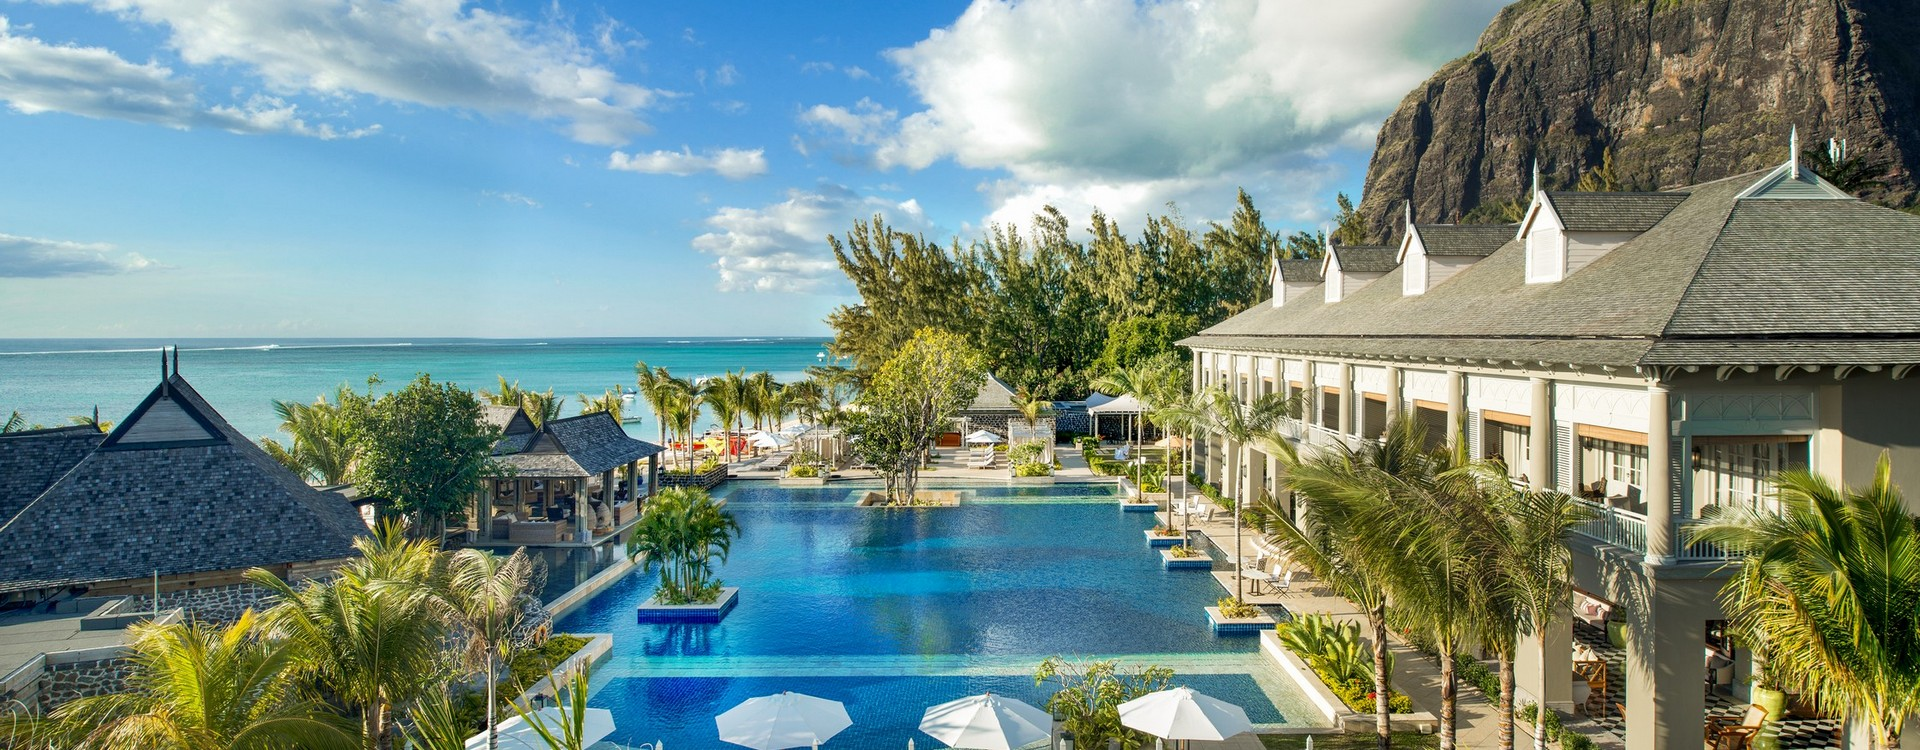 HOTEL in THE-ULTIMATE-LUXURY-MAURITIUS-TOUR